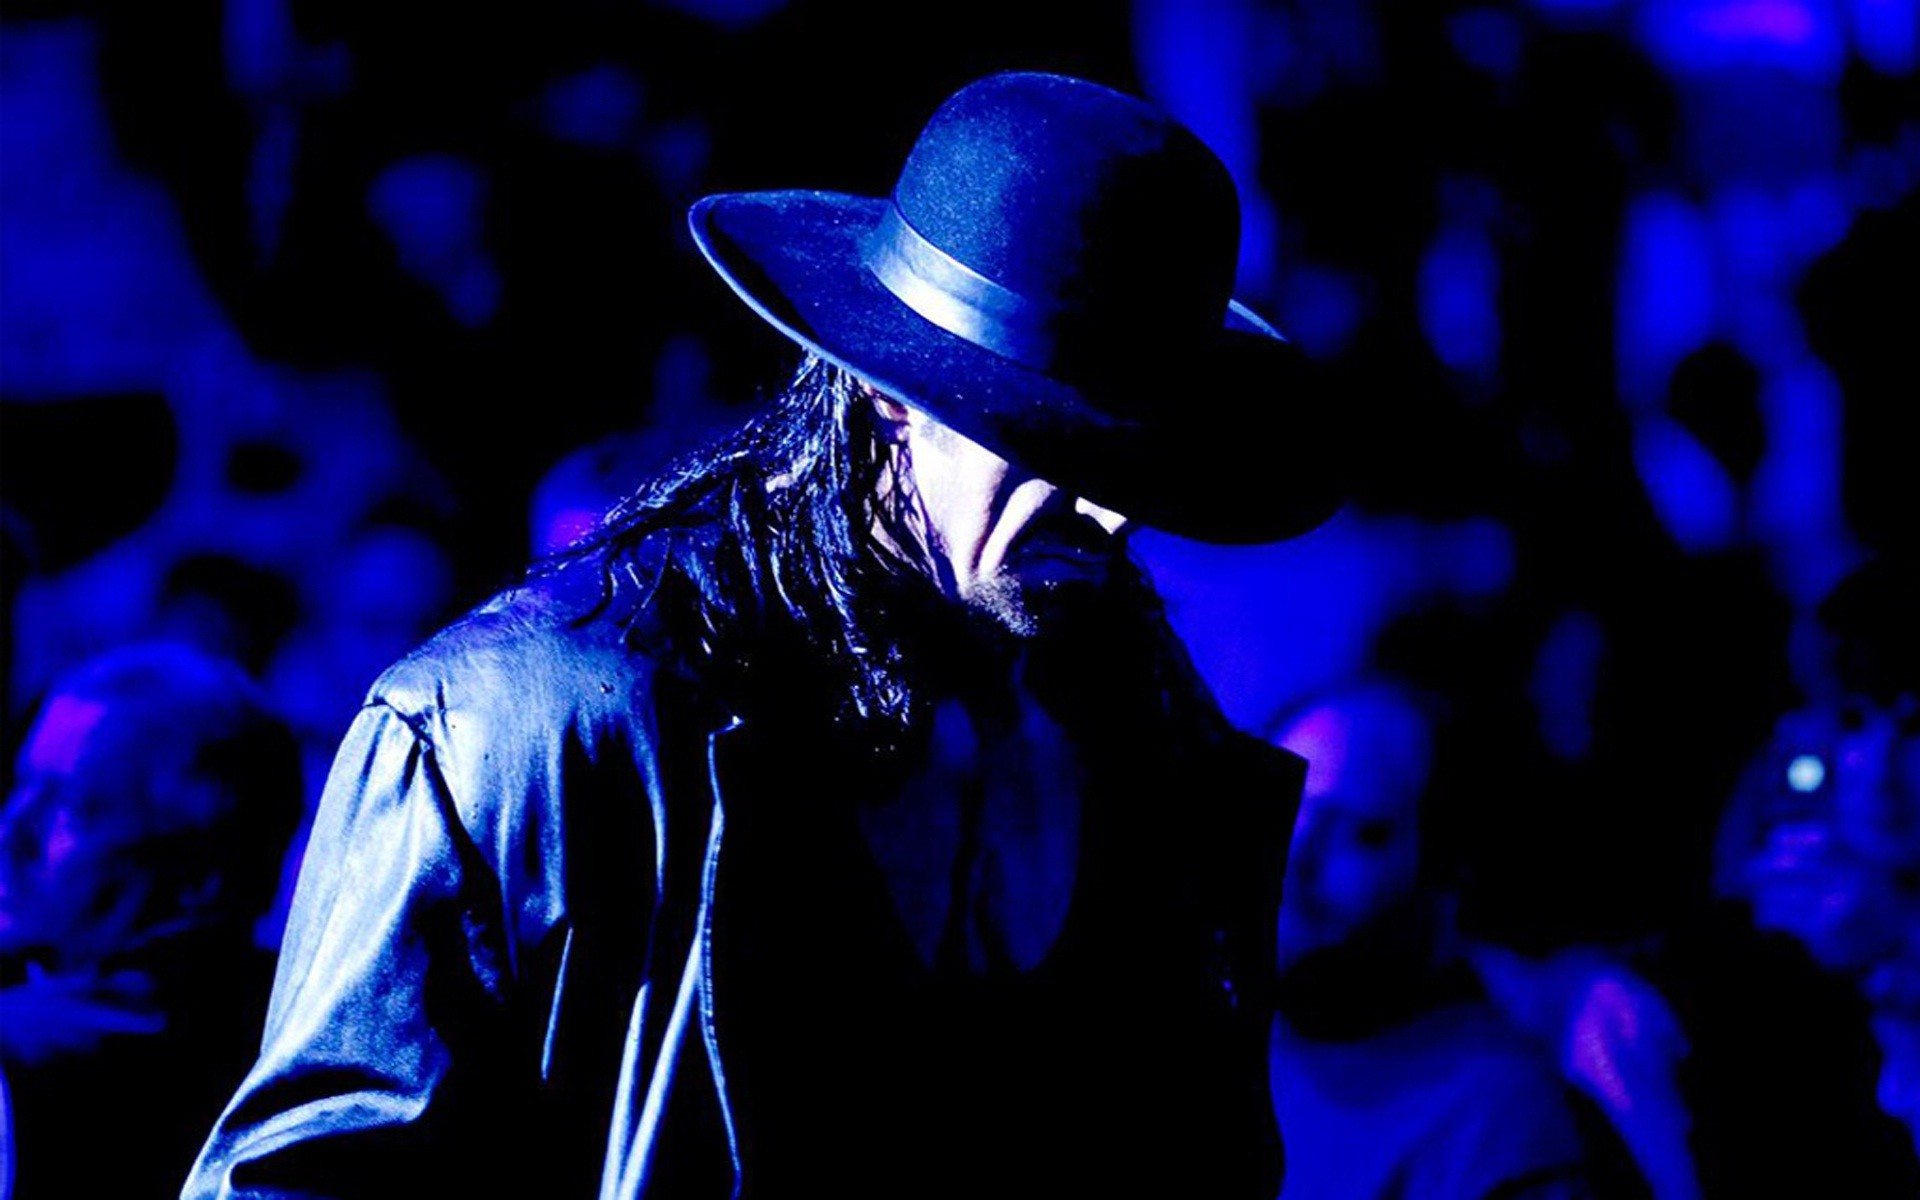 undertaker 3d wallpaper